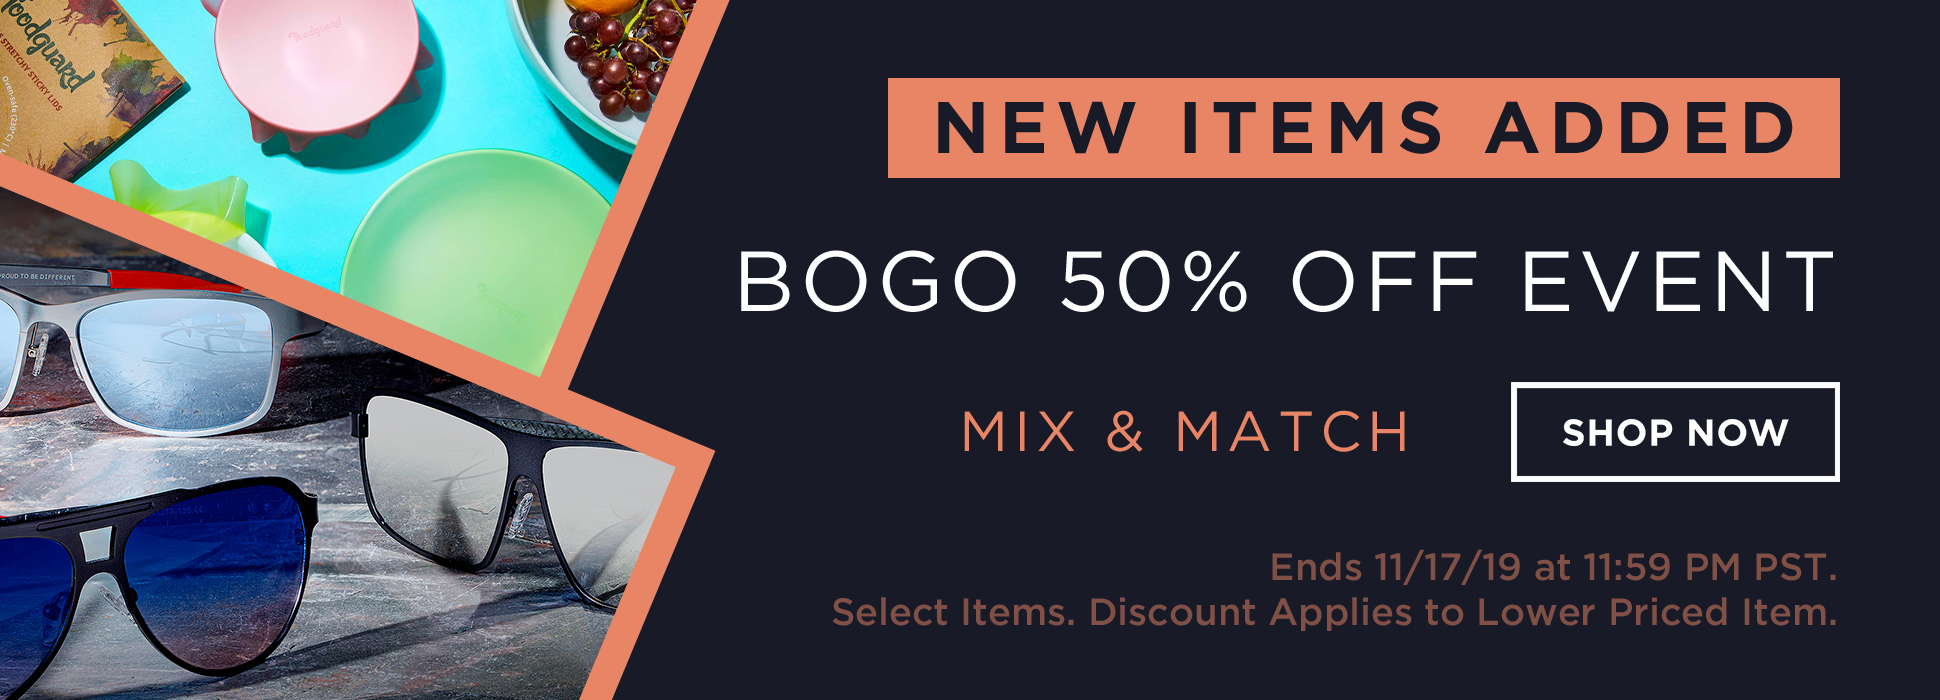 Holiday BOGO 50% Off - Day 2 (Web Banner)